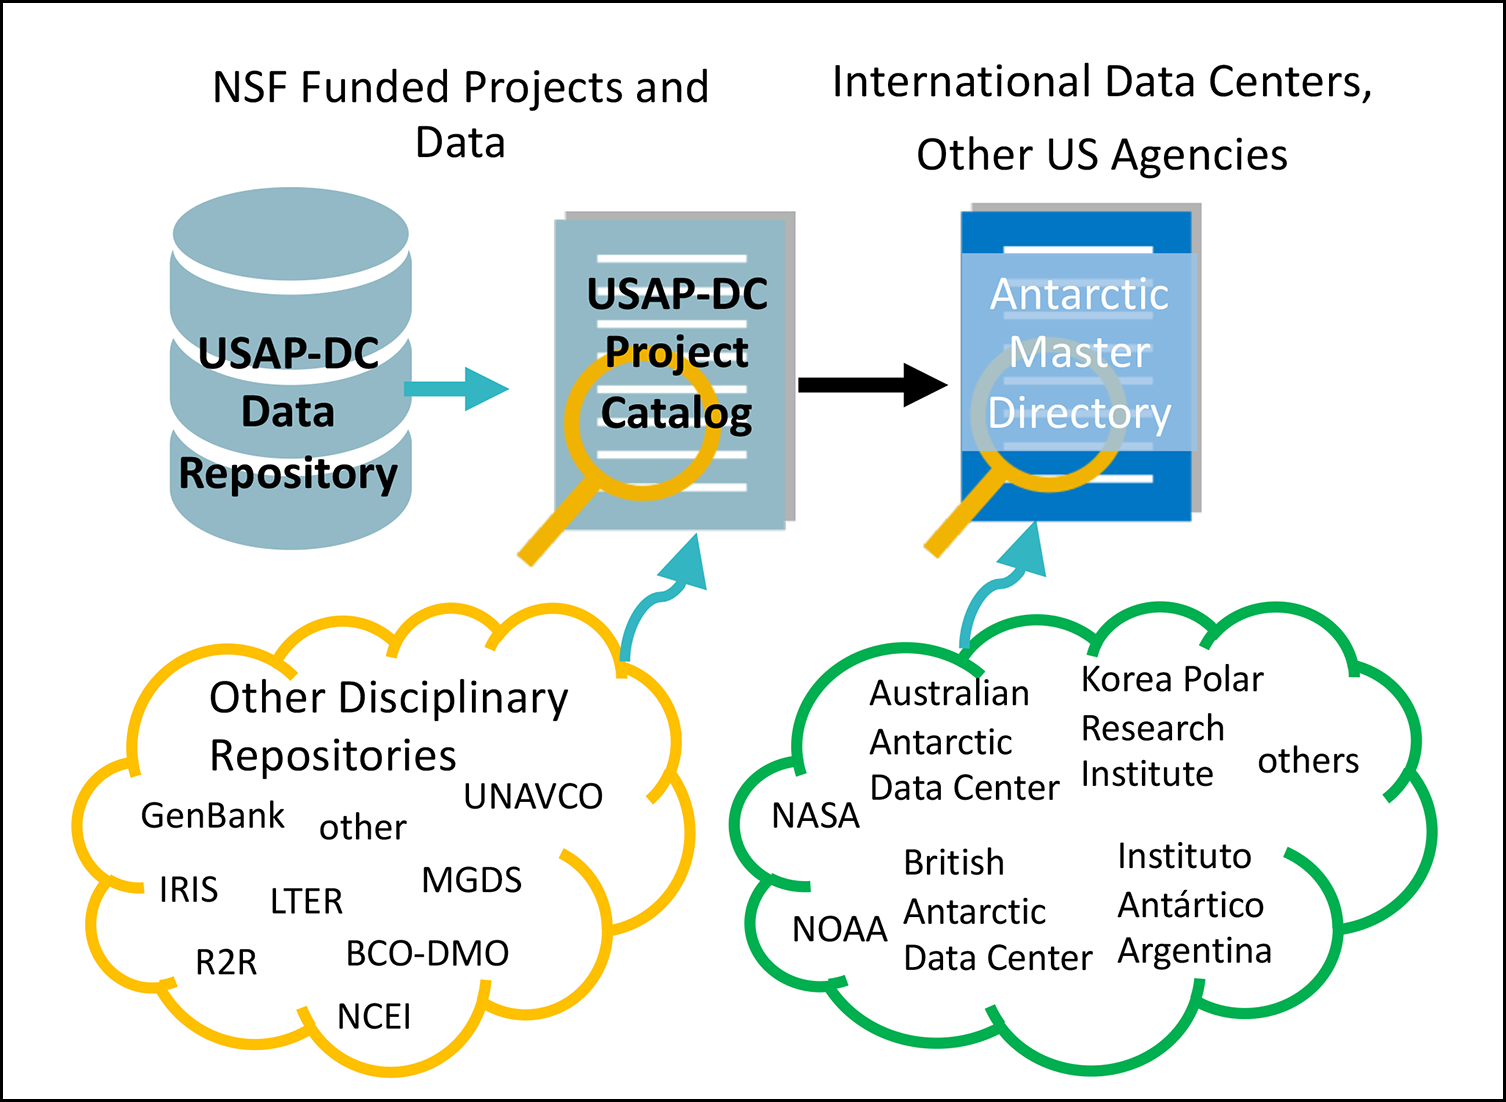 Diagram showing data sources collected by the USAP-DC feeding into the Antarctic Master Directory along with data from other domestic and international agencies